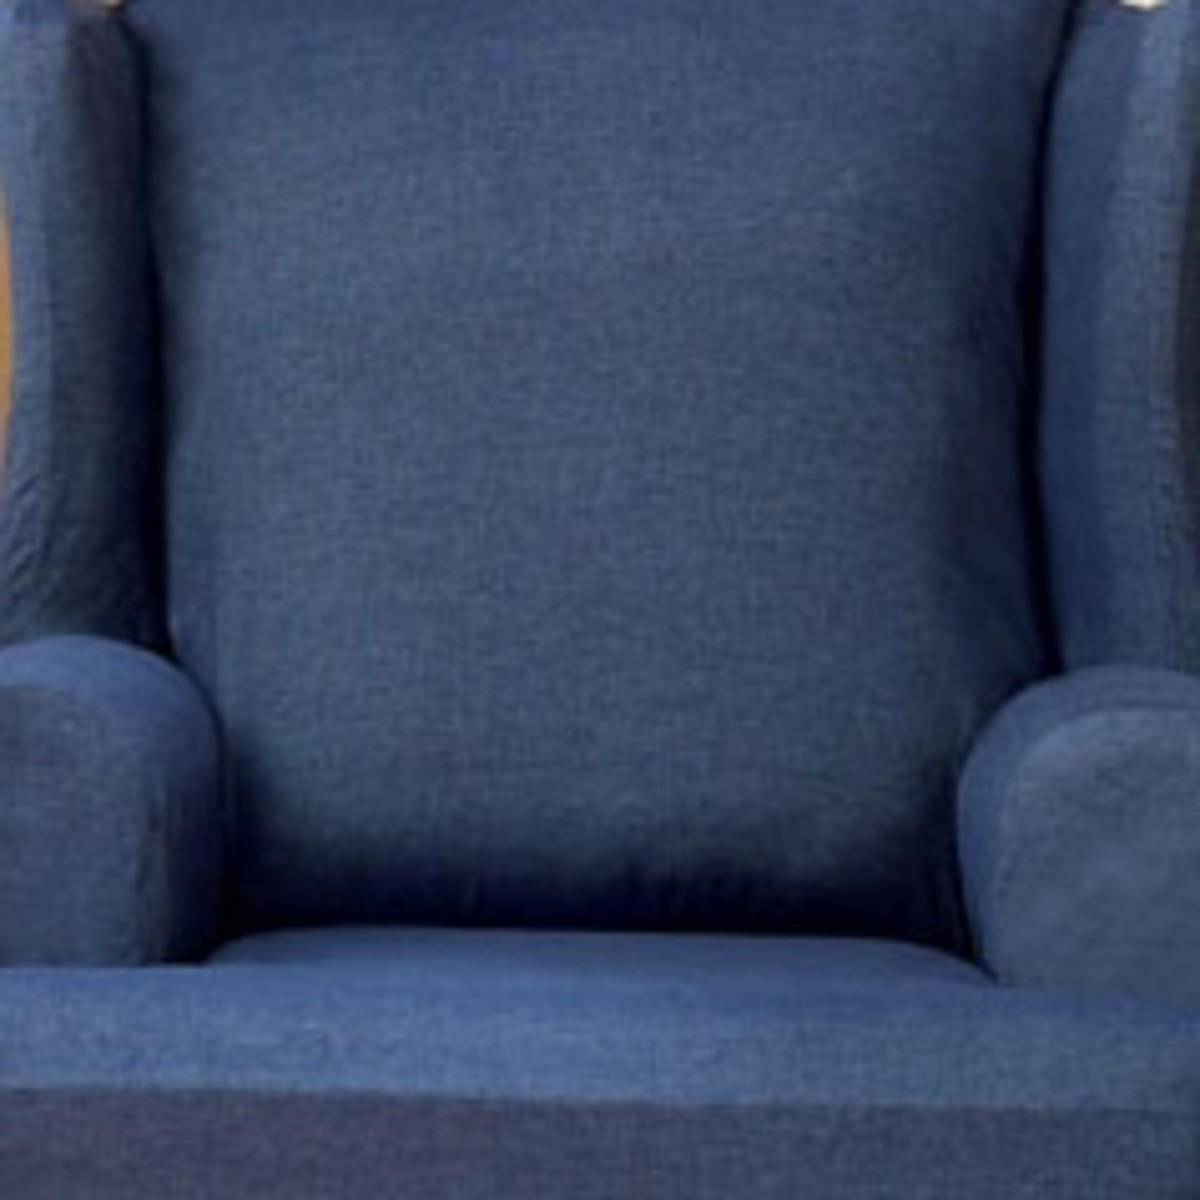 Denim Fabric slipcovers for the captains' chairs seems a budget-friendly, durable and washable choice for upgrading the dingy seats. And I think Elvis would approve.